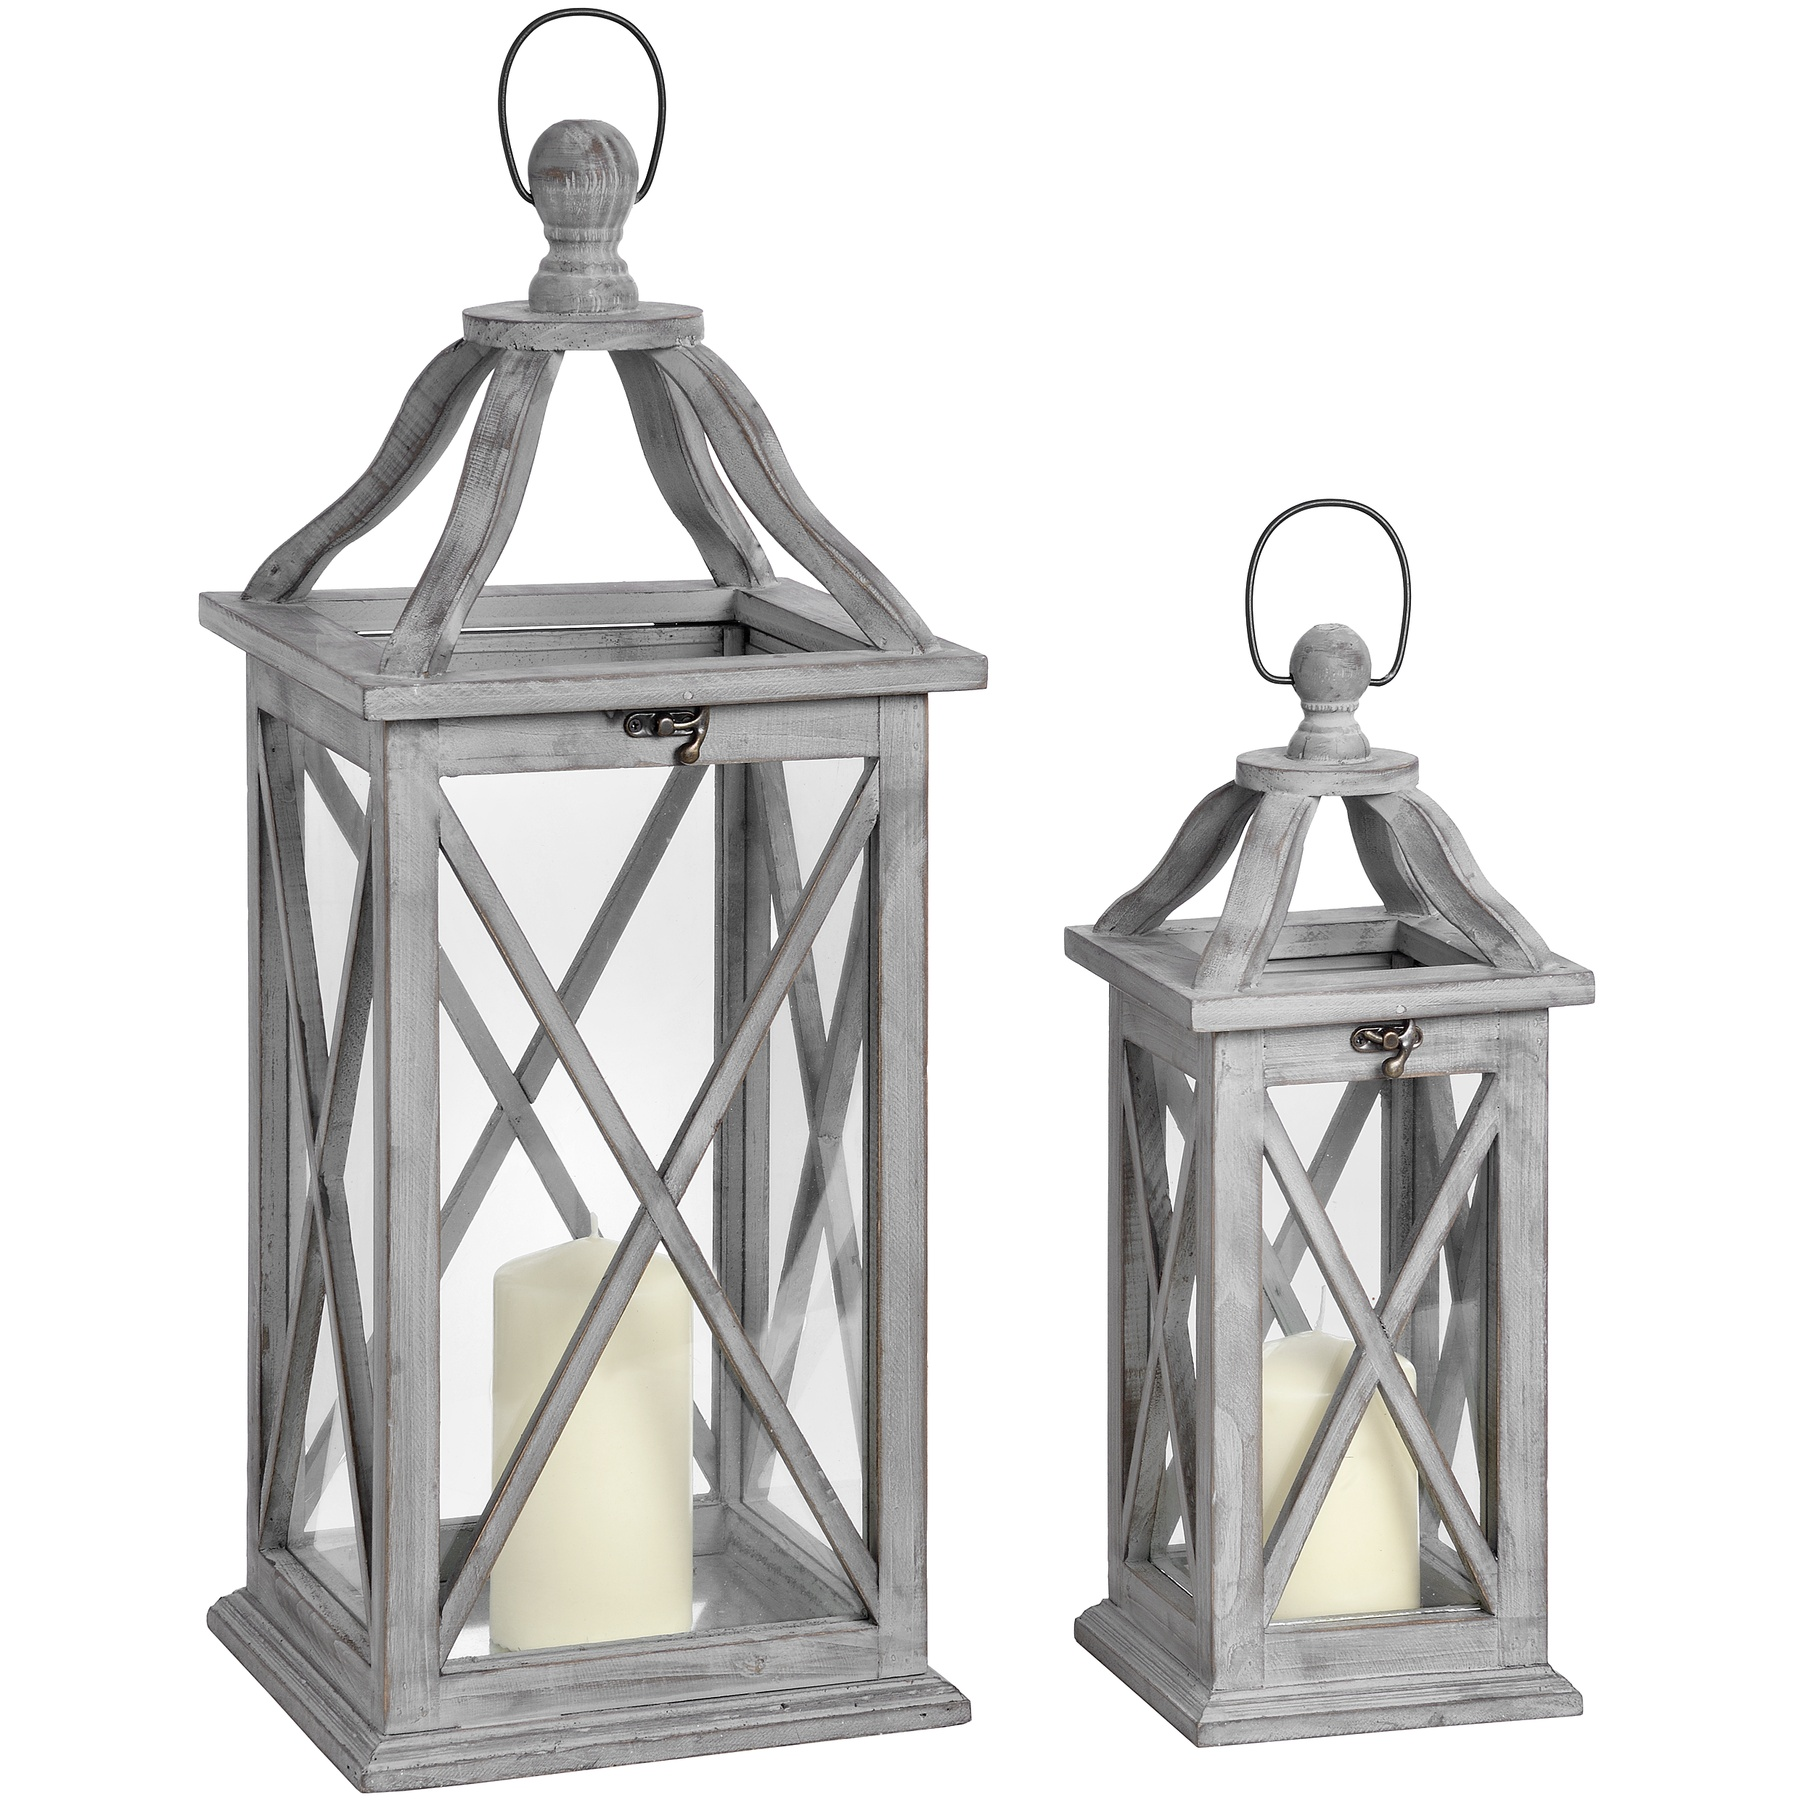 Set Of Two Grey Cross Section Lanterns With Open Tops by Hill Interiors